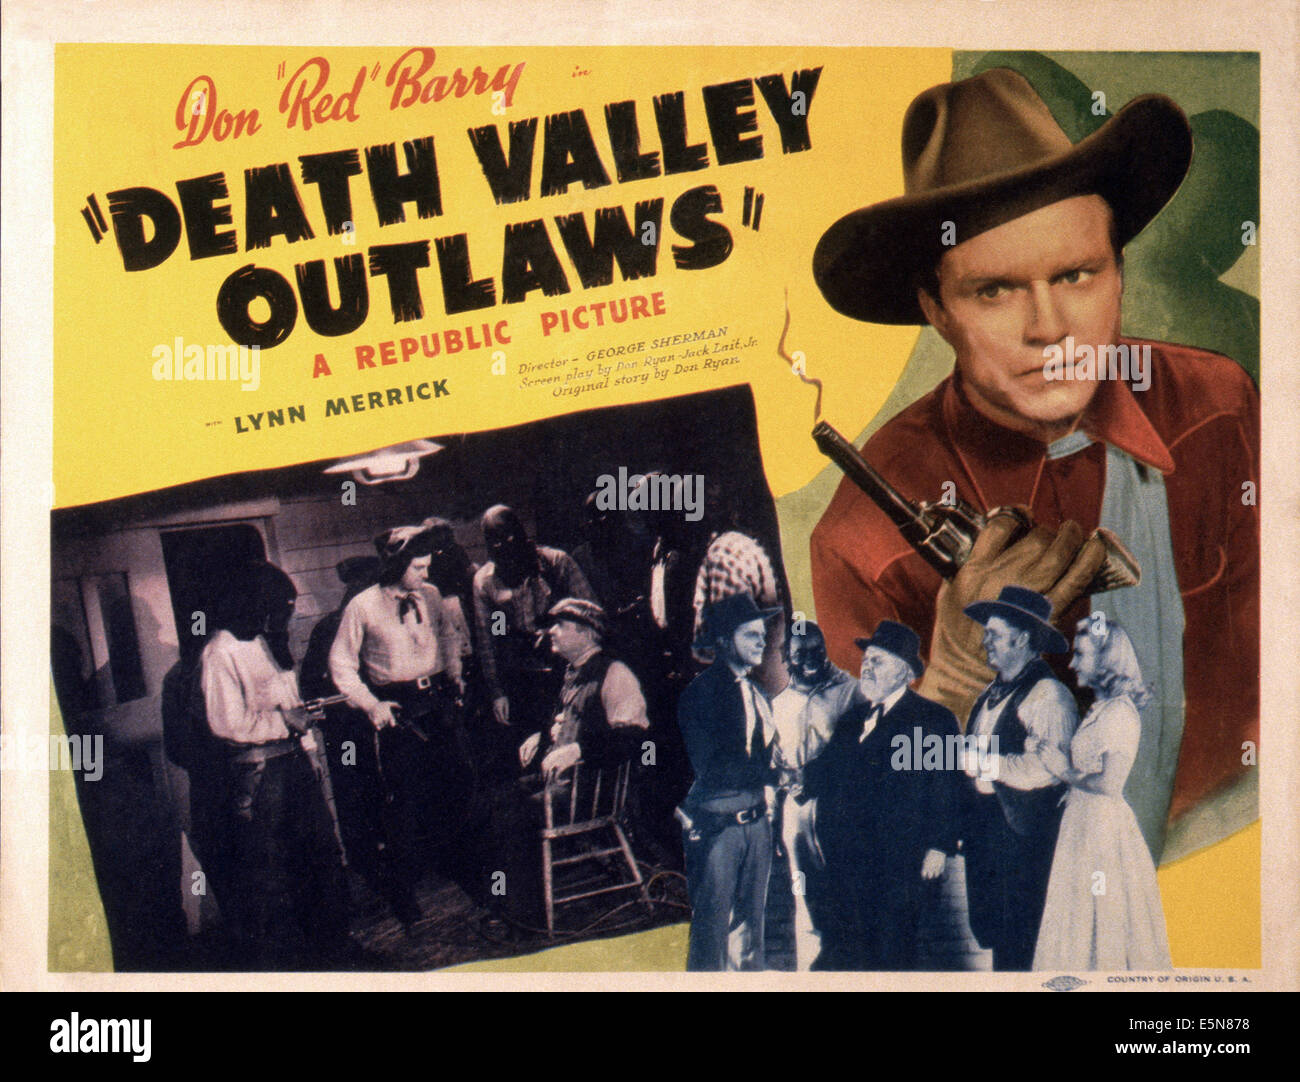 death-valley-outlaws-don-red-barry-right